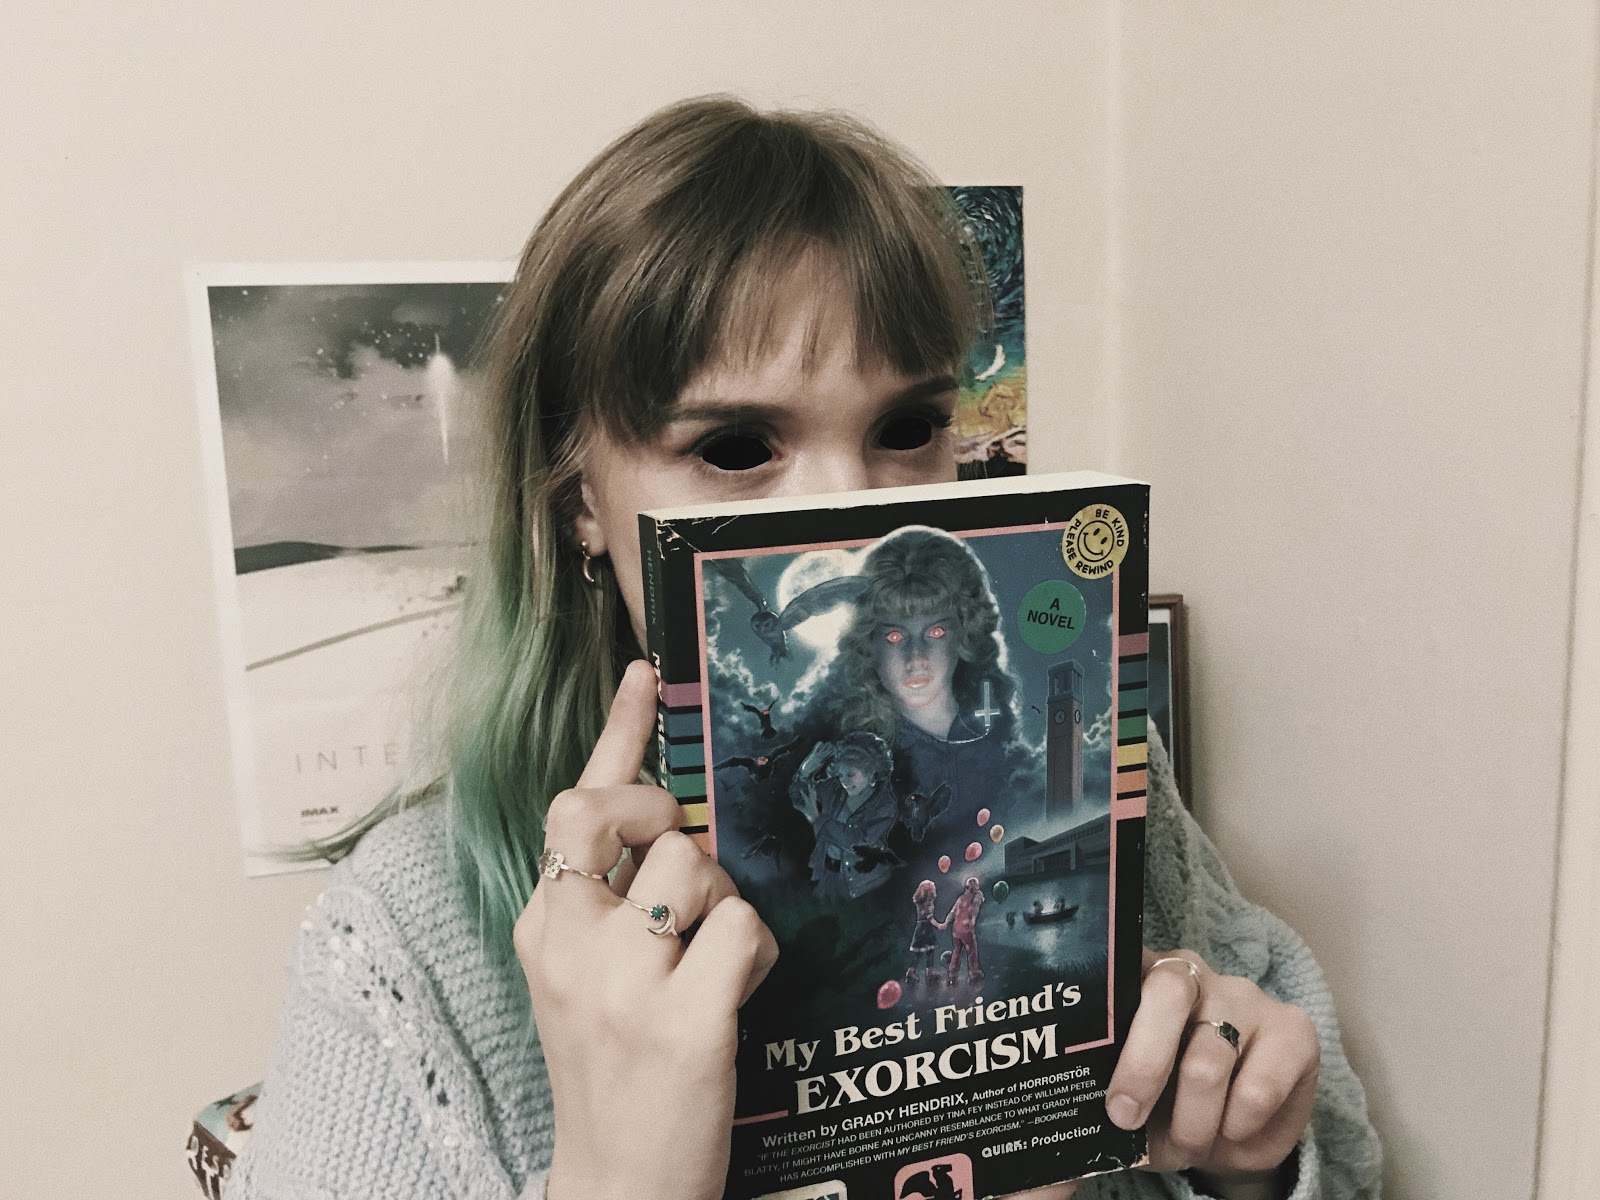 Book of the Month: My Best Friend's Exorcism